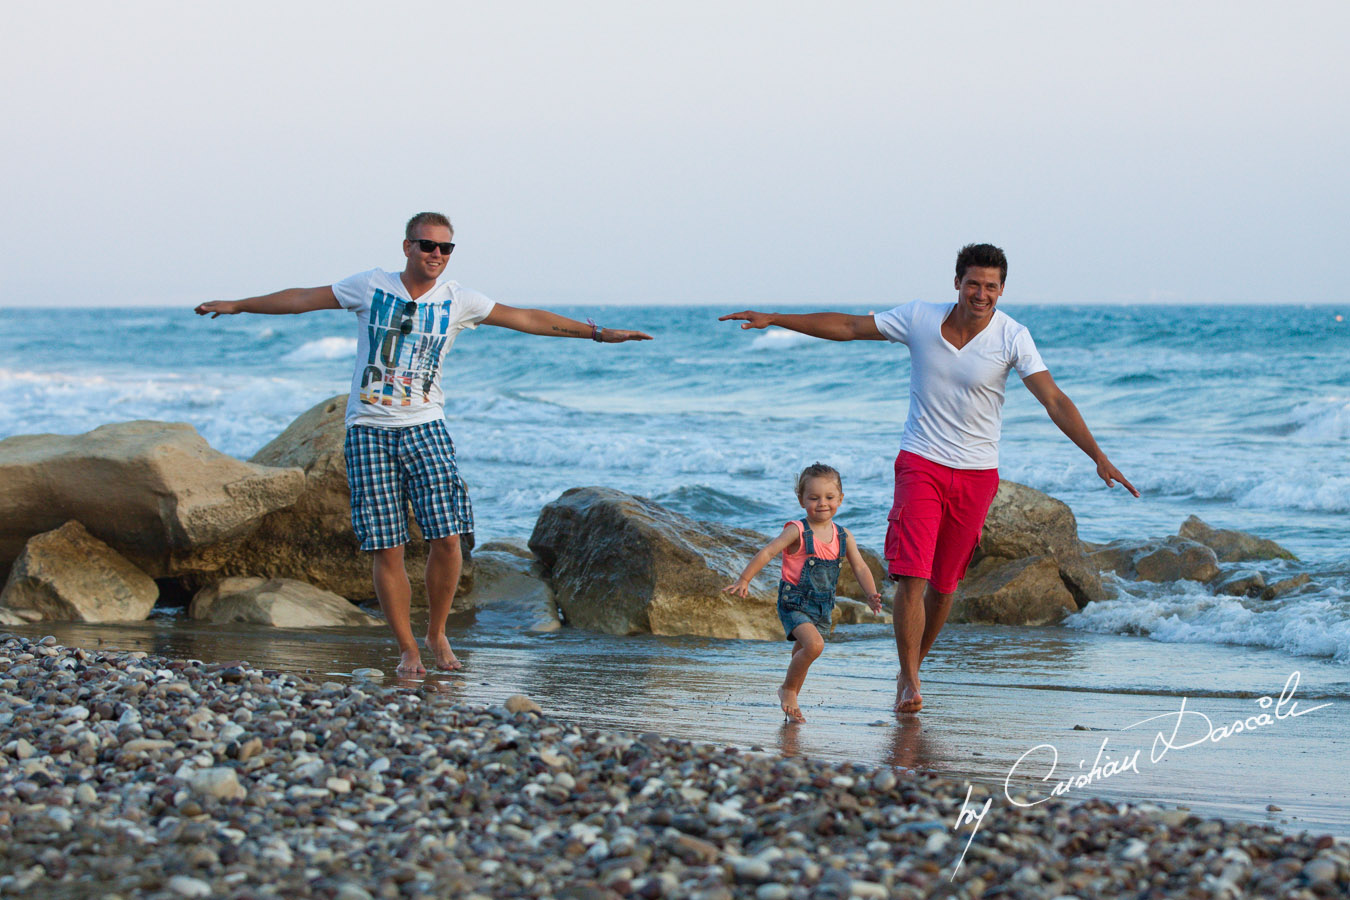 Photo Shoot in Cyprus - Nicky, Laura & Caitlin. Cyprus Photographer: Cristian Dascalu